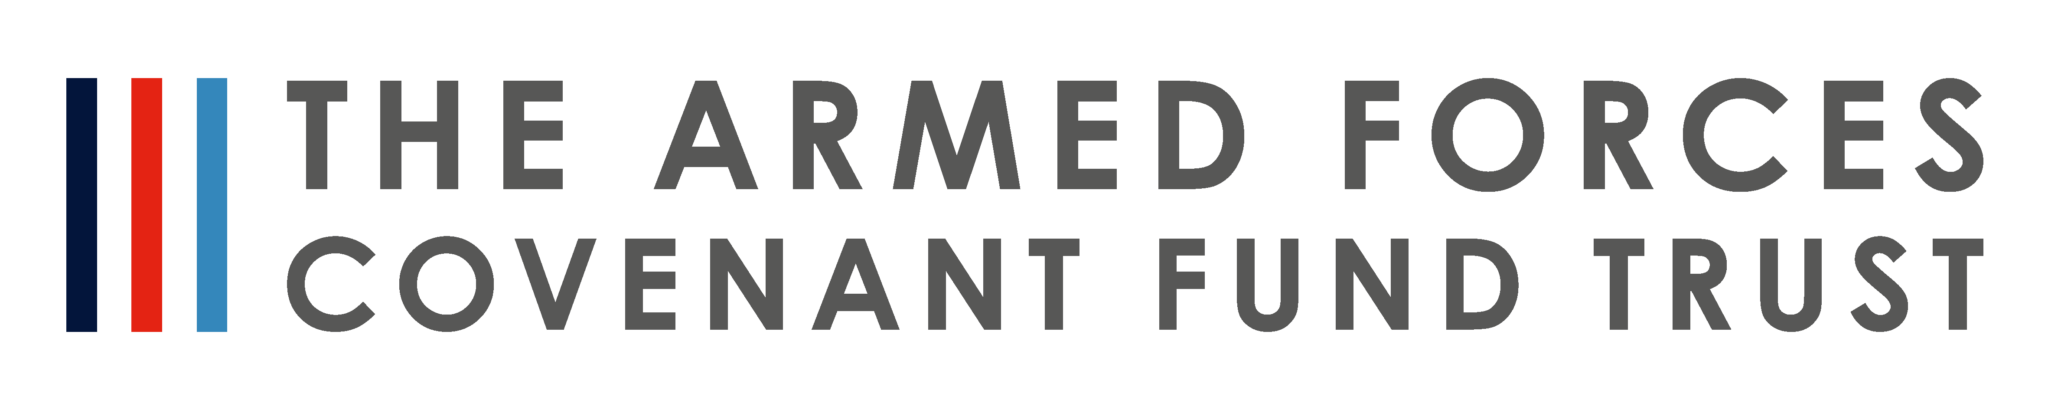 The Armed Forces Covenant Fund Trust